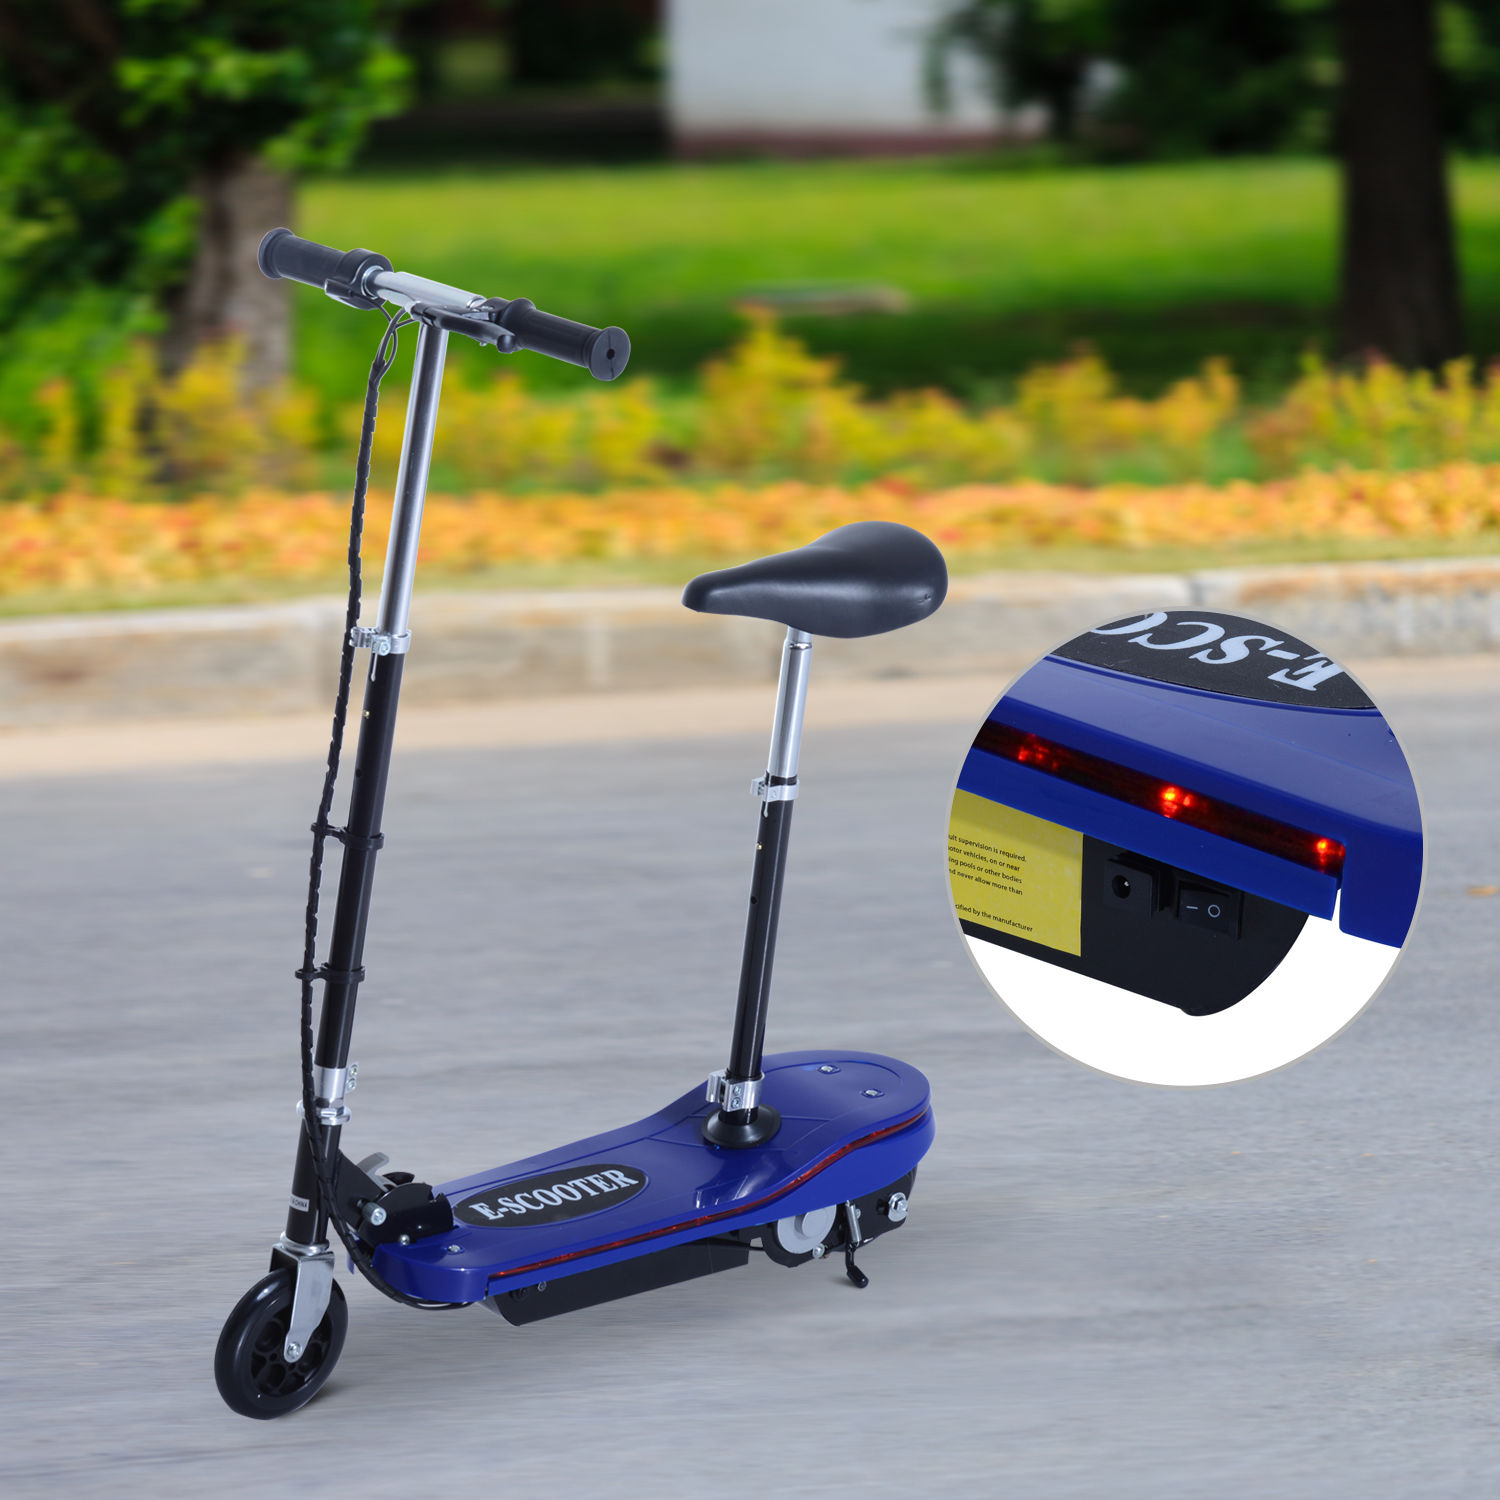 Patinete-Electrico-Plegable-con-Manillar-y-Asiento-Scooter-con-Luz-LED-2-Colores